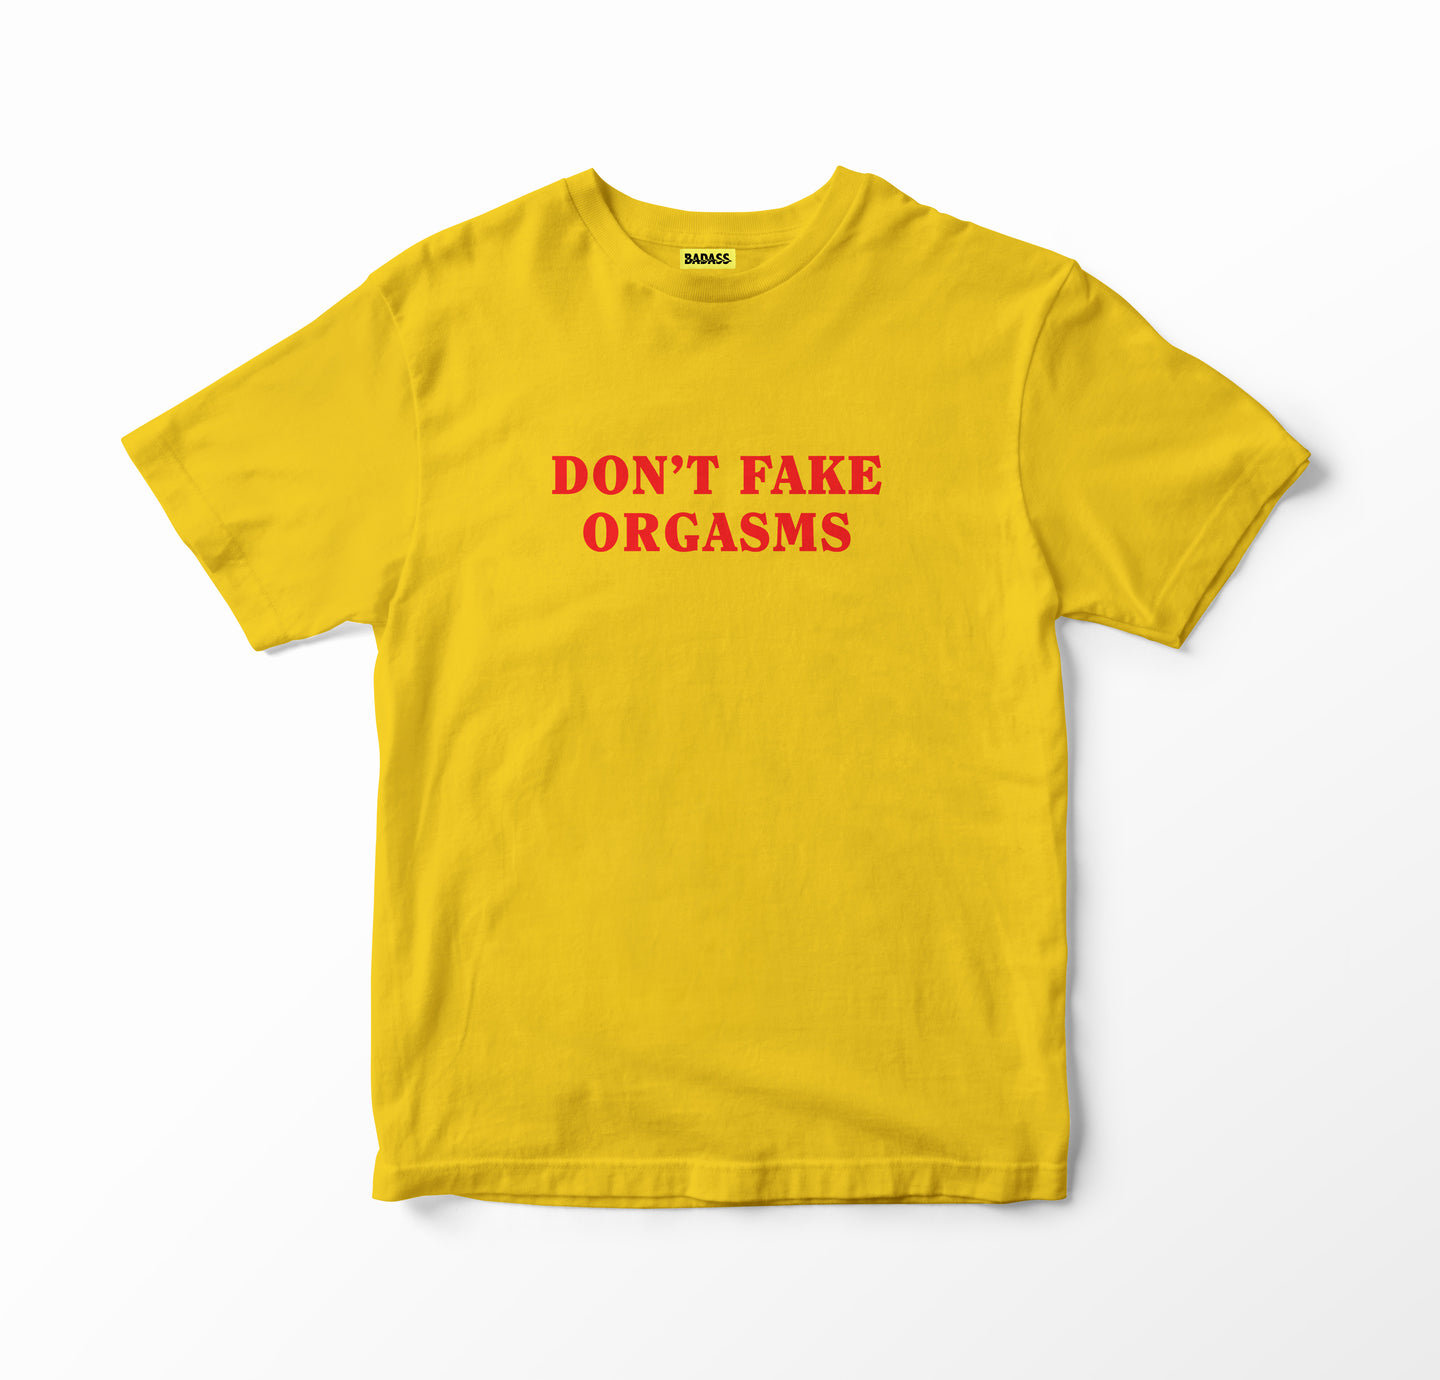 Don't Fake Orgasms yellow t-shirt